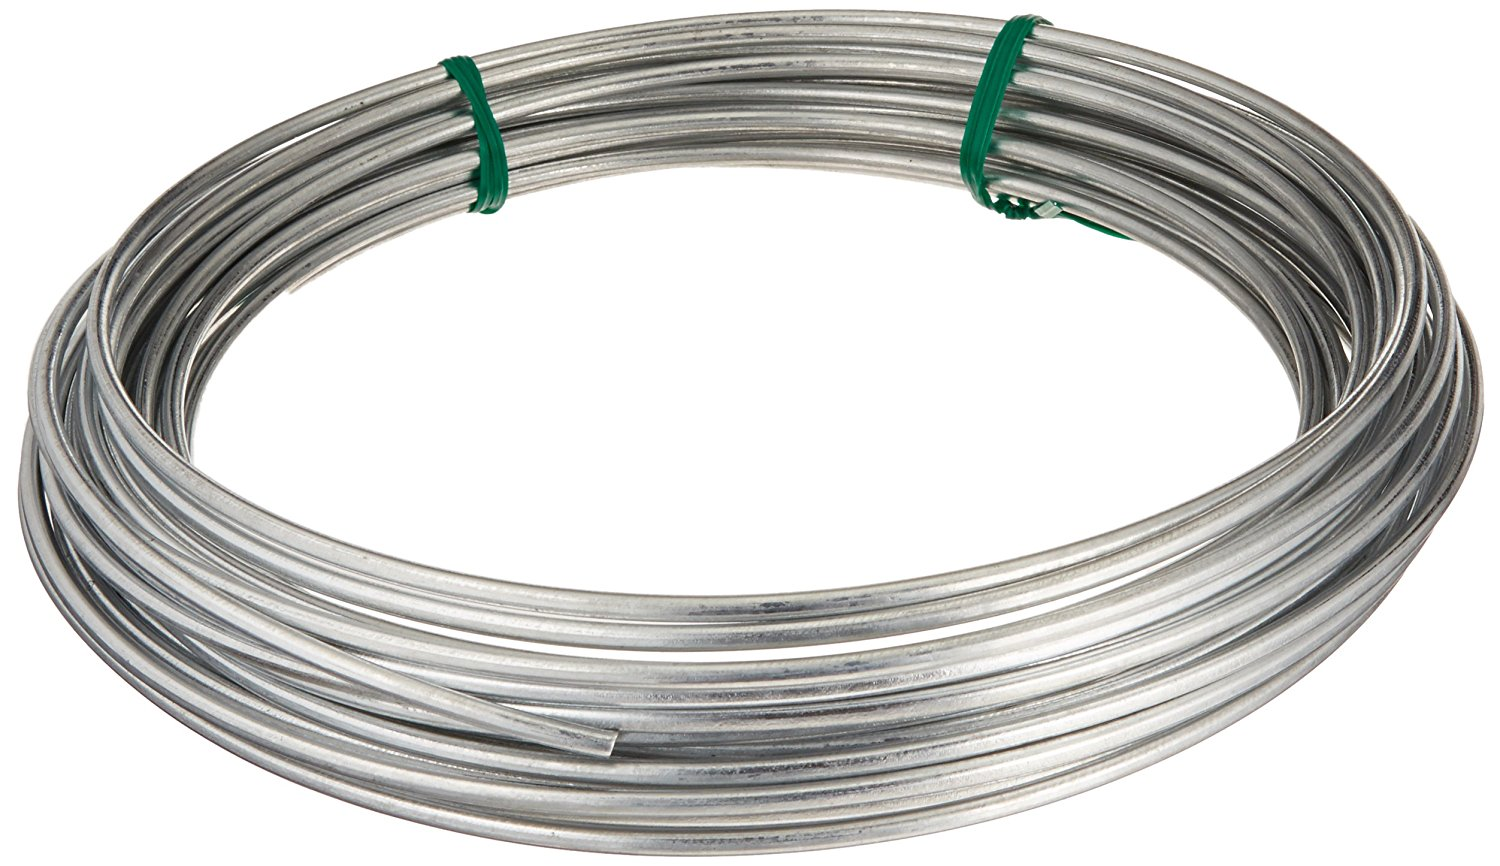 hight resolution of 122062 galvanized solid utility wire 9 gauge 50 foot coil multi purpose wire ideal for workshop garden house and farm applications by hillman